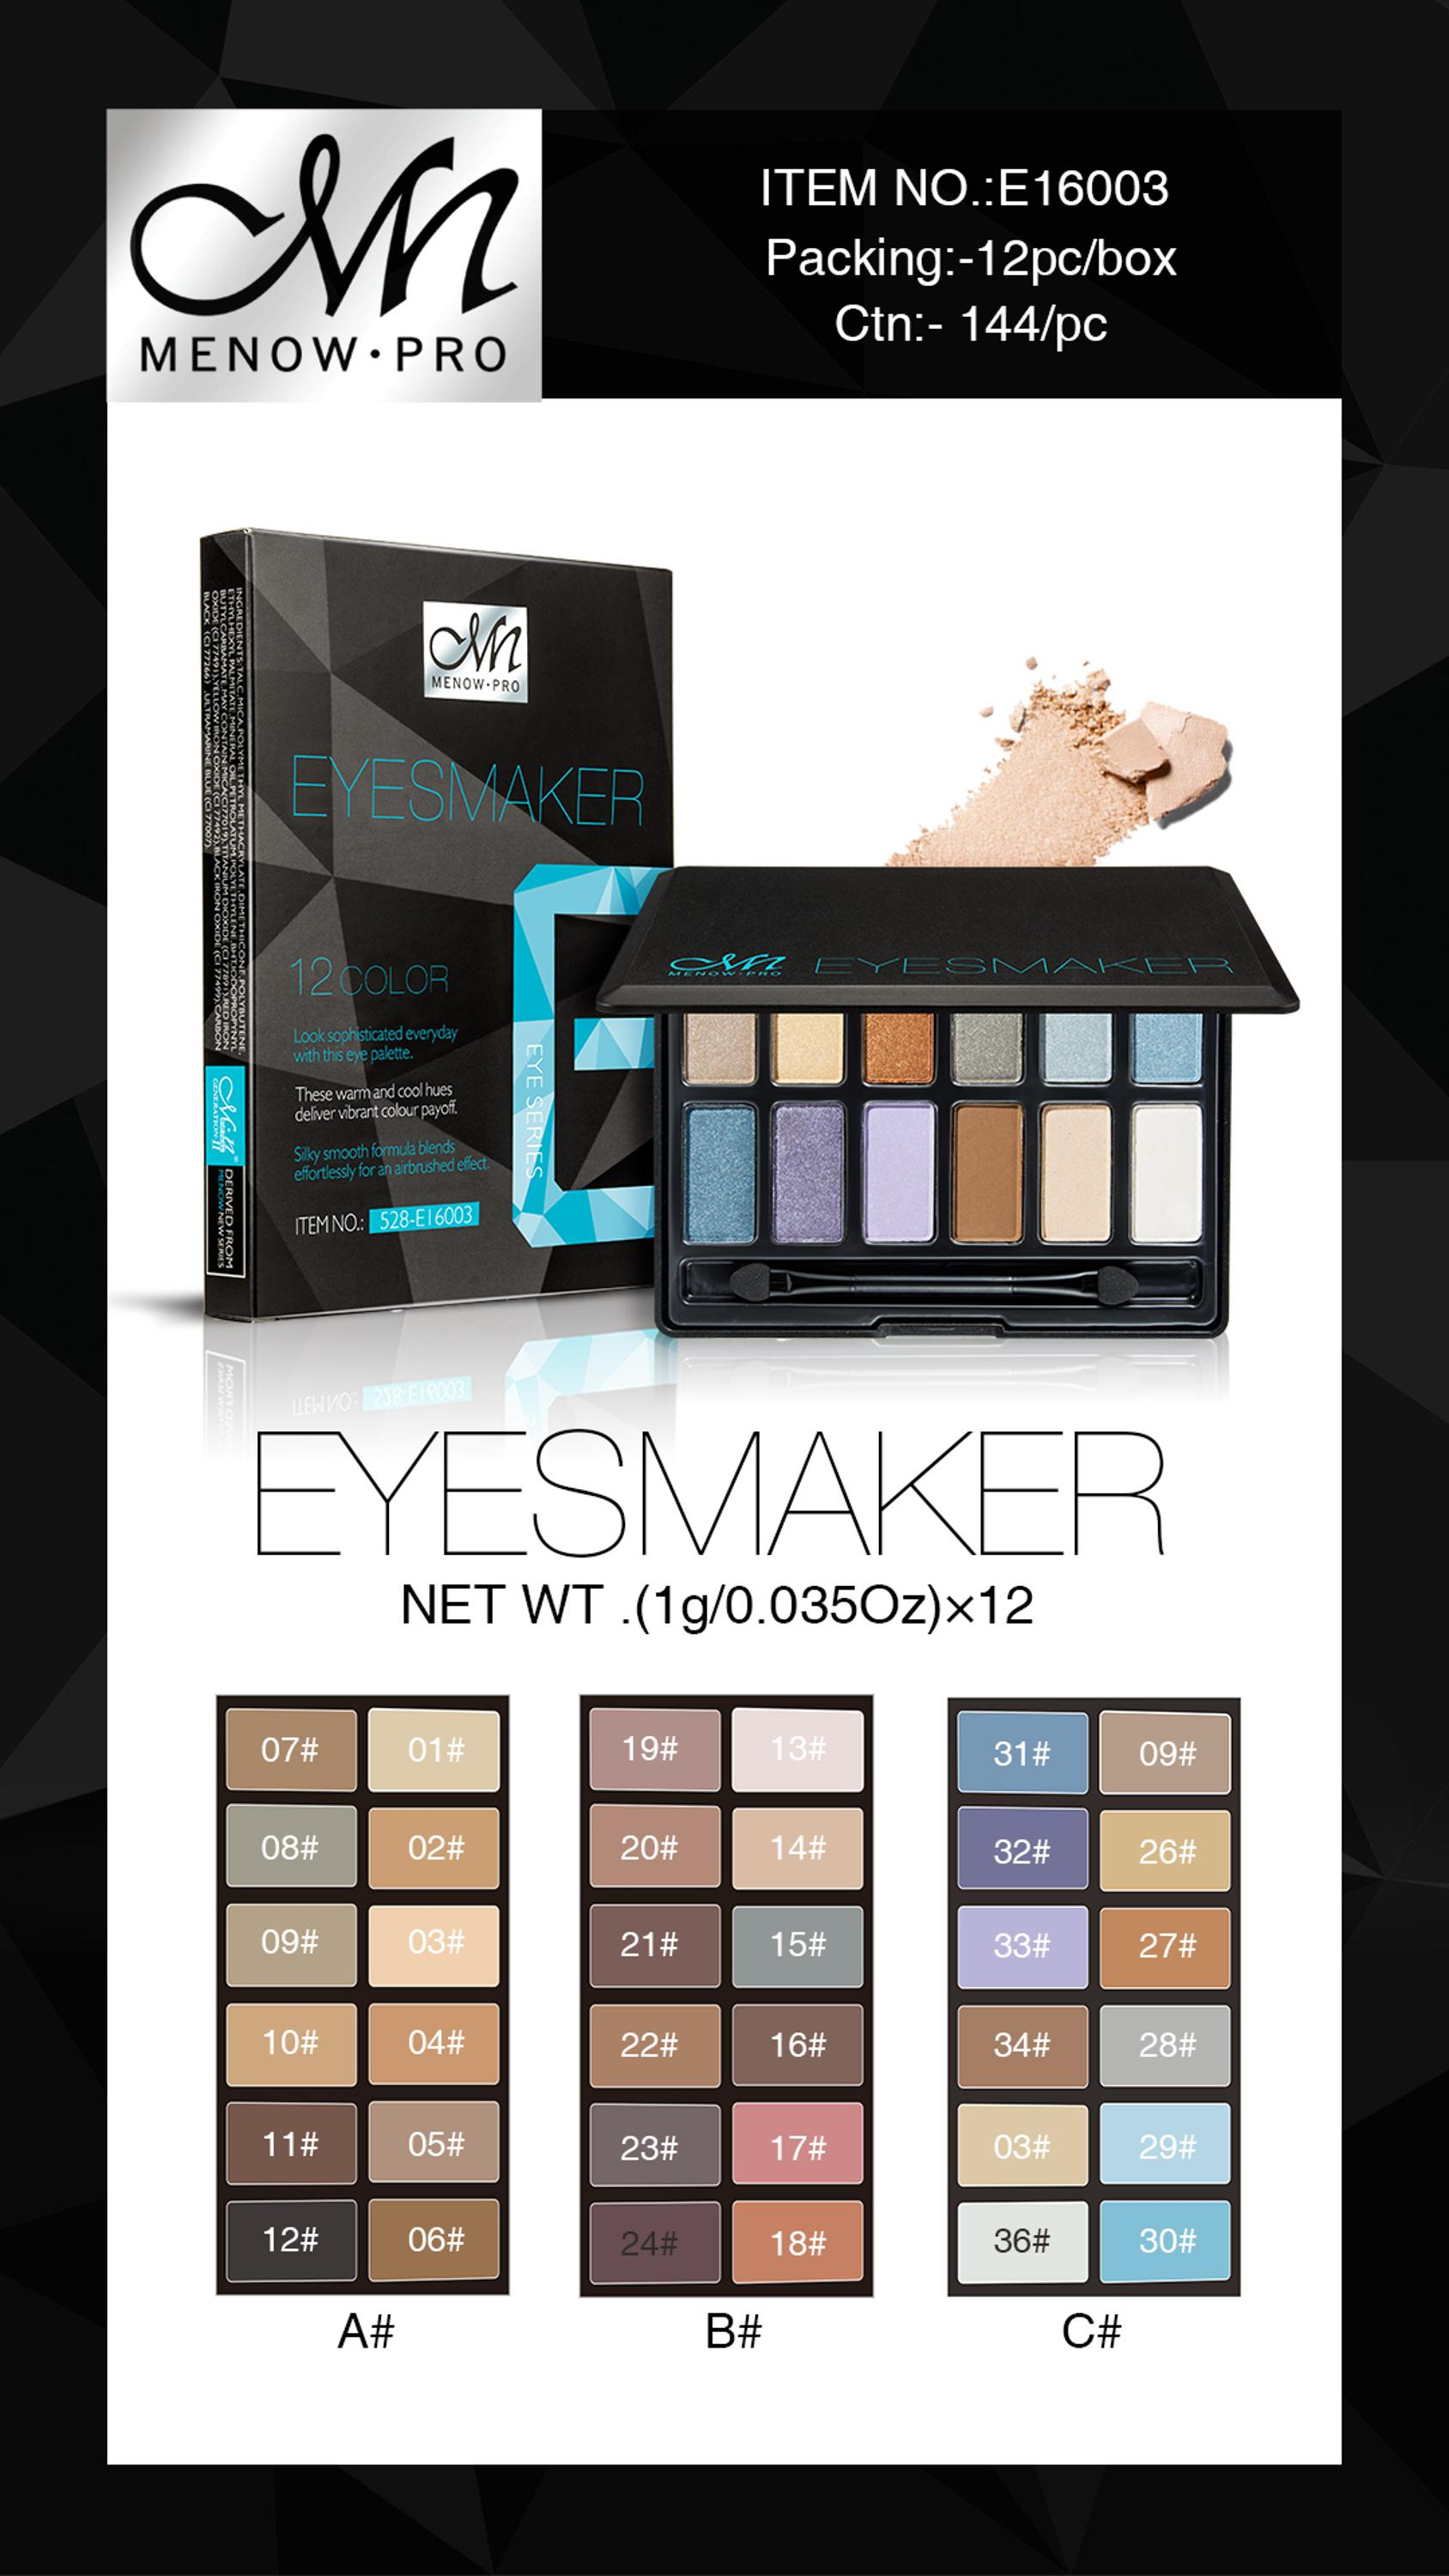 Menow E16003 Cosmetic Makeup Glamorous 12 colors Eye Shadow Palette with Brush